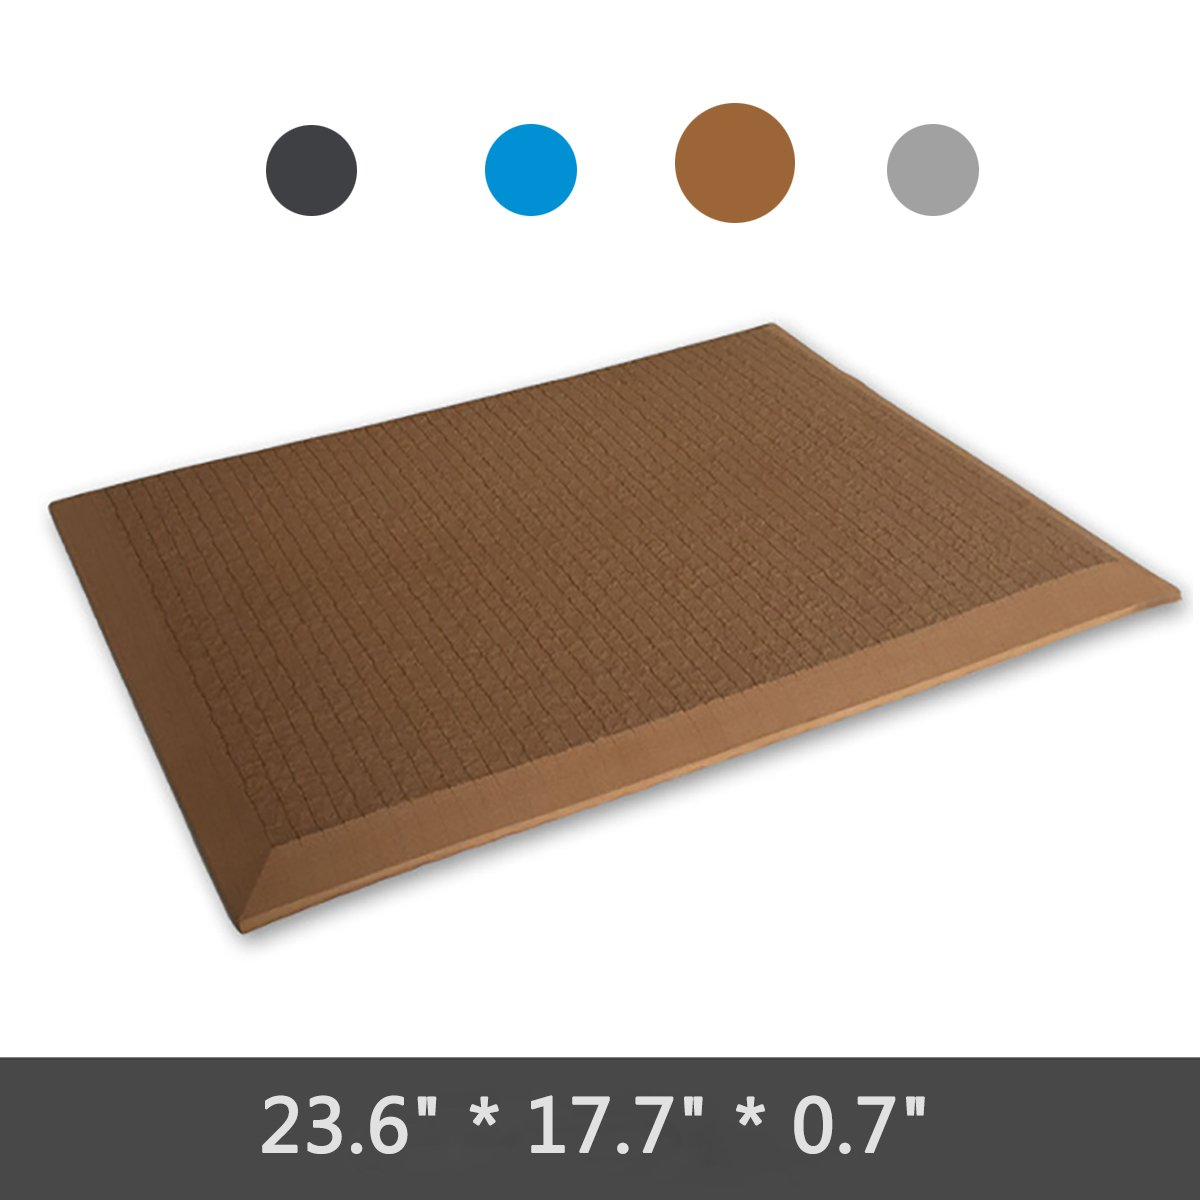 SUZM Women and Men Anti Fatigue Comfort Mat 5 Colors Waterproof Ergonomically Engineered Floor Mats for Kitchen, Rooms and Other Workstations(Black, 23.6*17.7*0.7)